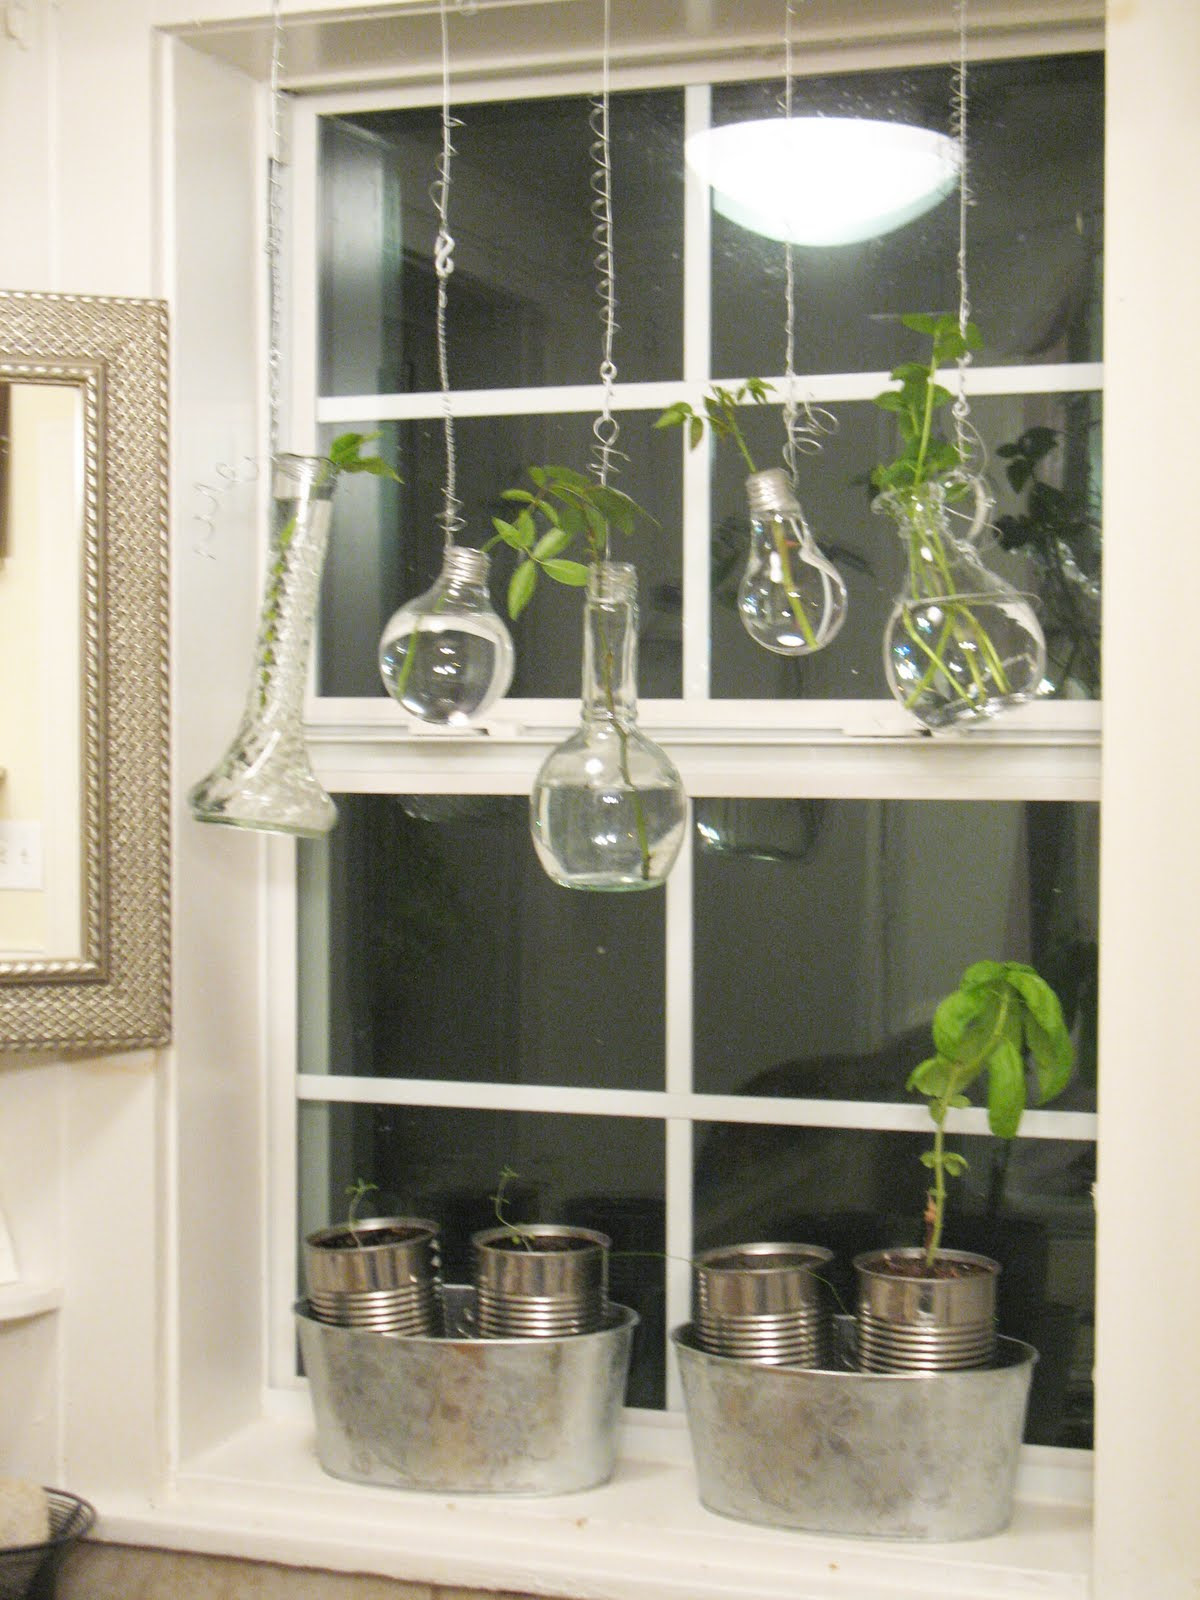 Garden Windows For Kitchens Upgrading The Outlook Right Away